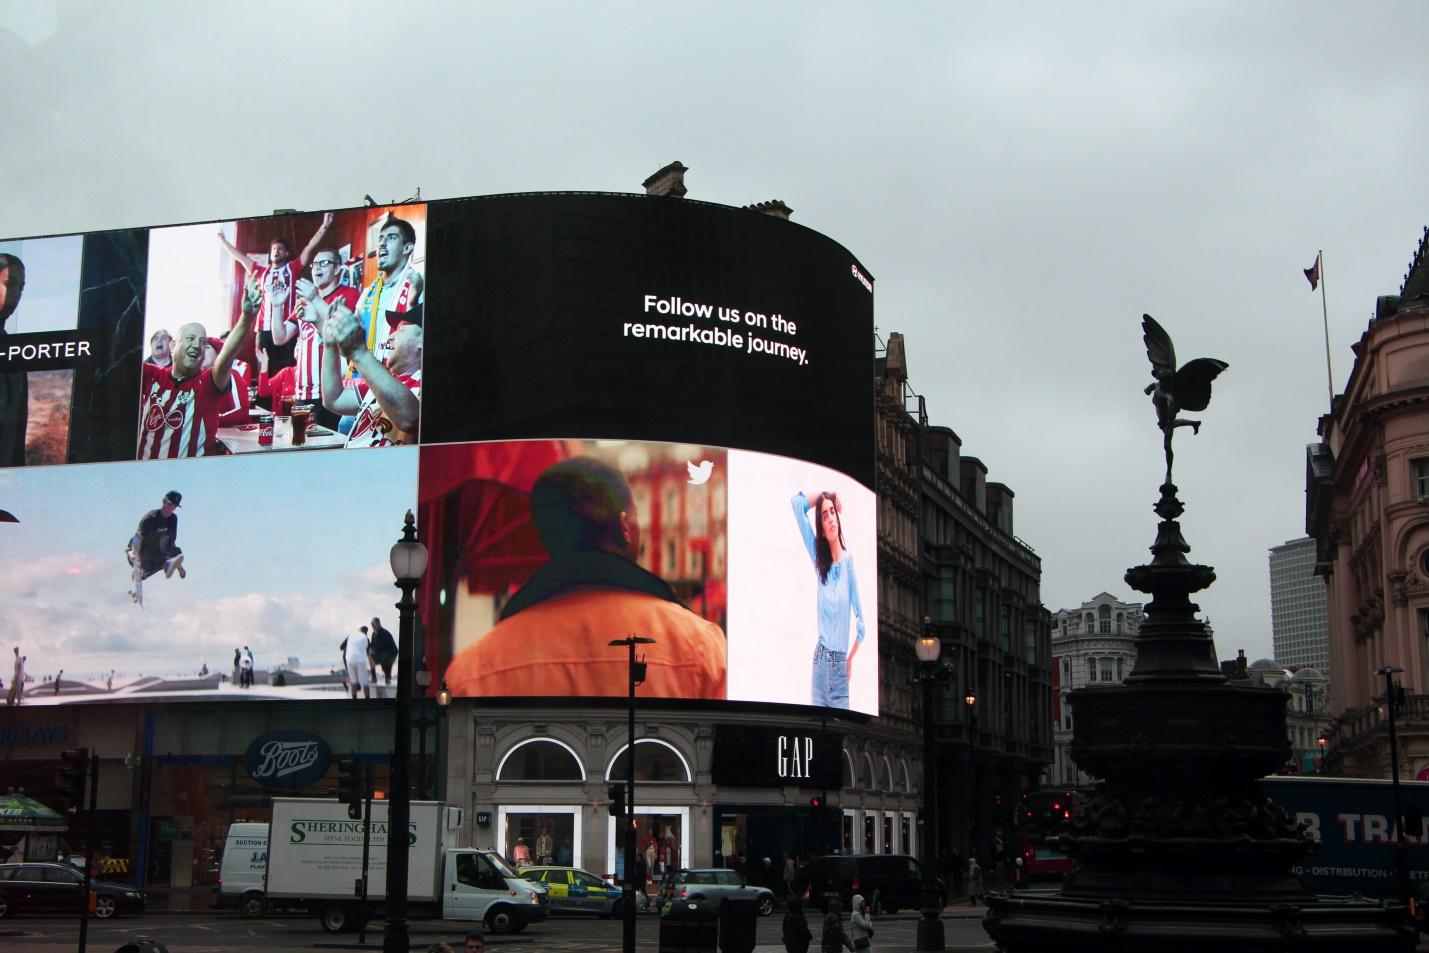 A huge digital OOH billboard with various companies promoting their products, including Net-A-Porter and Twitter.